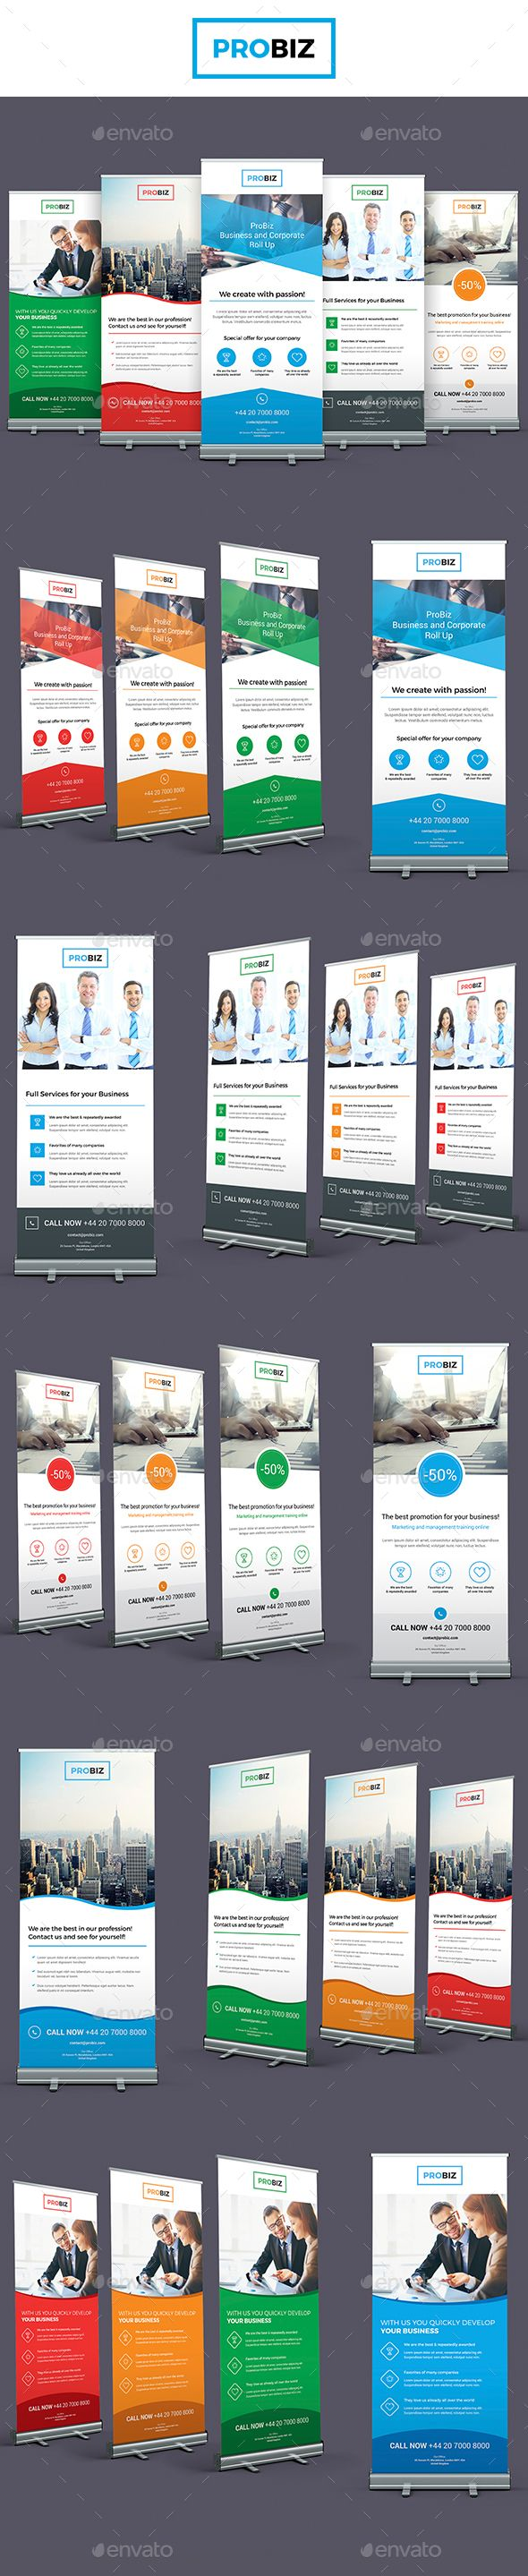 ProBiz – Business and Corporate Roll Up Banners Templates PSD, InDesign INDD